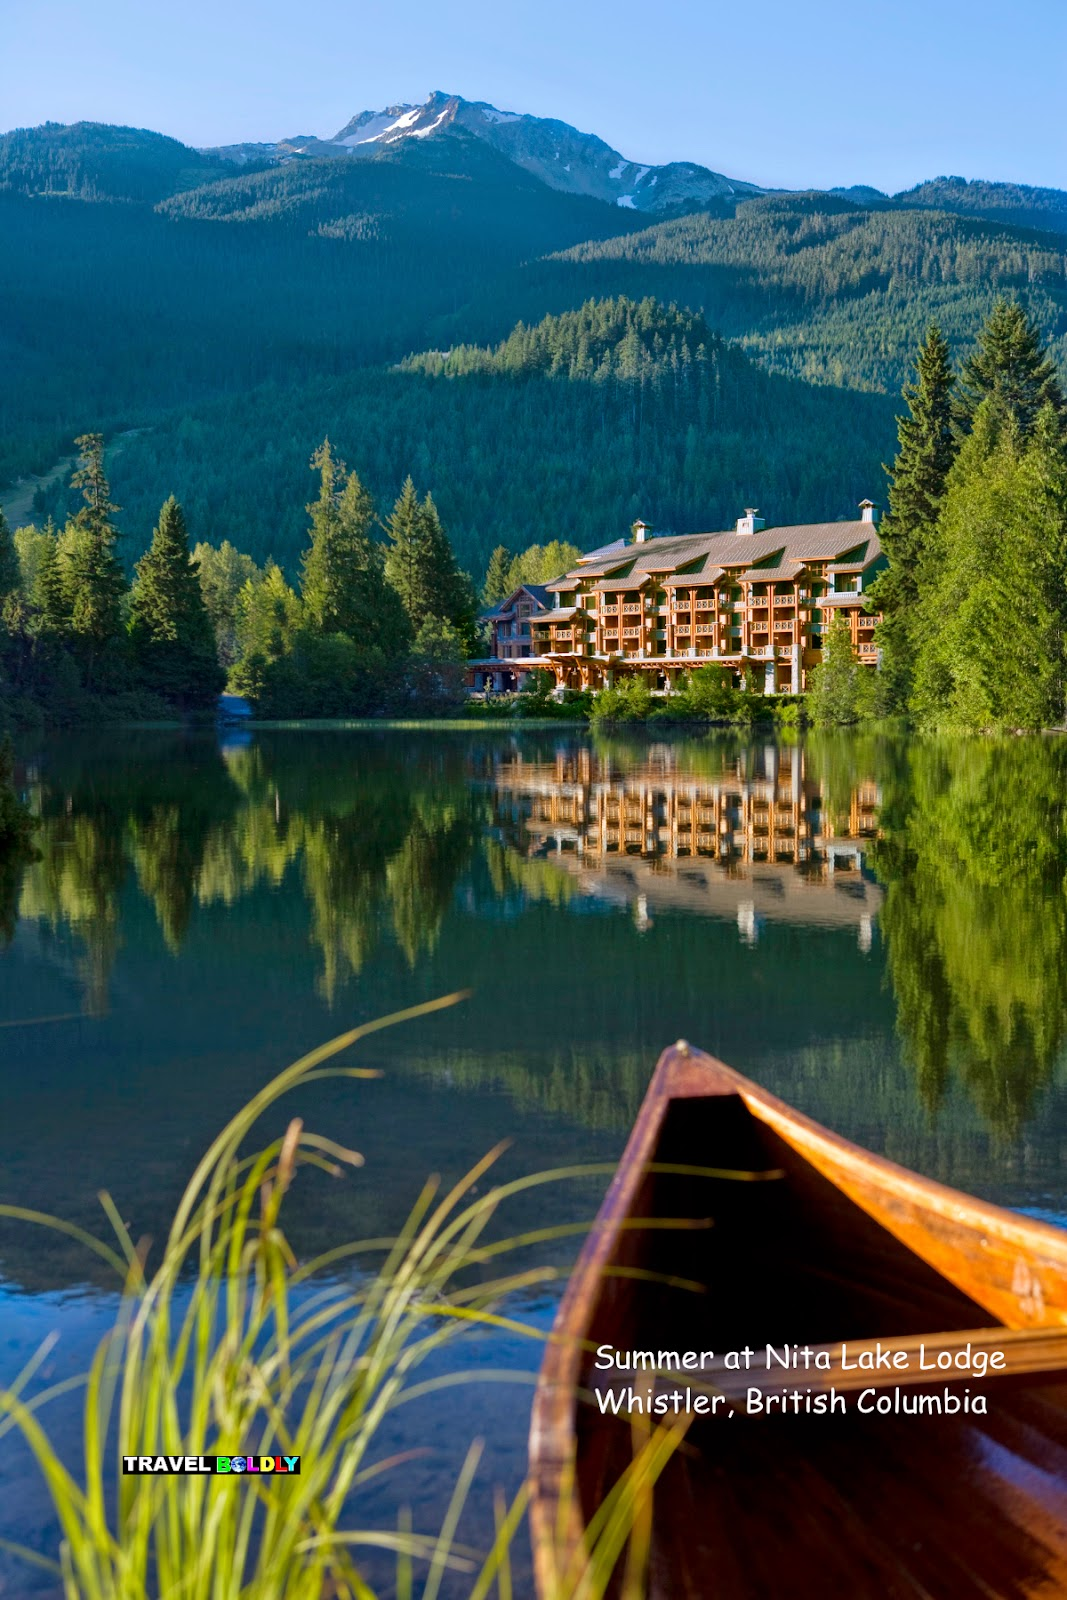 Nita Lake Lodge in summer. Whistler, British Columbia - Travel Boldly